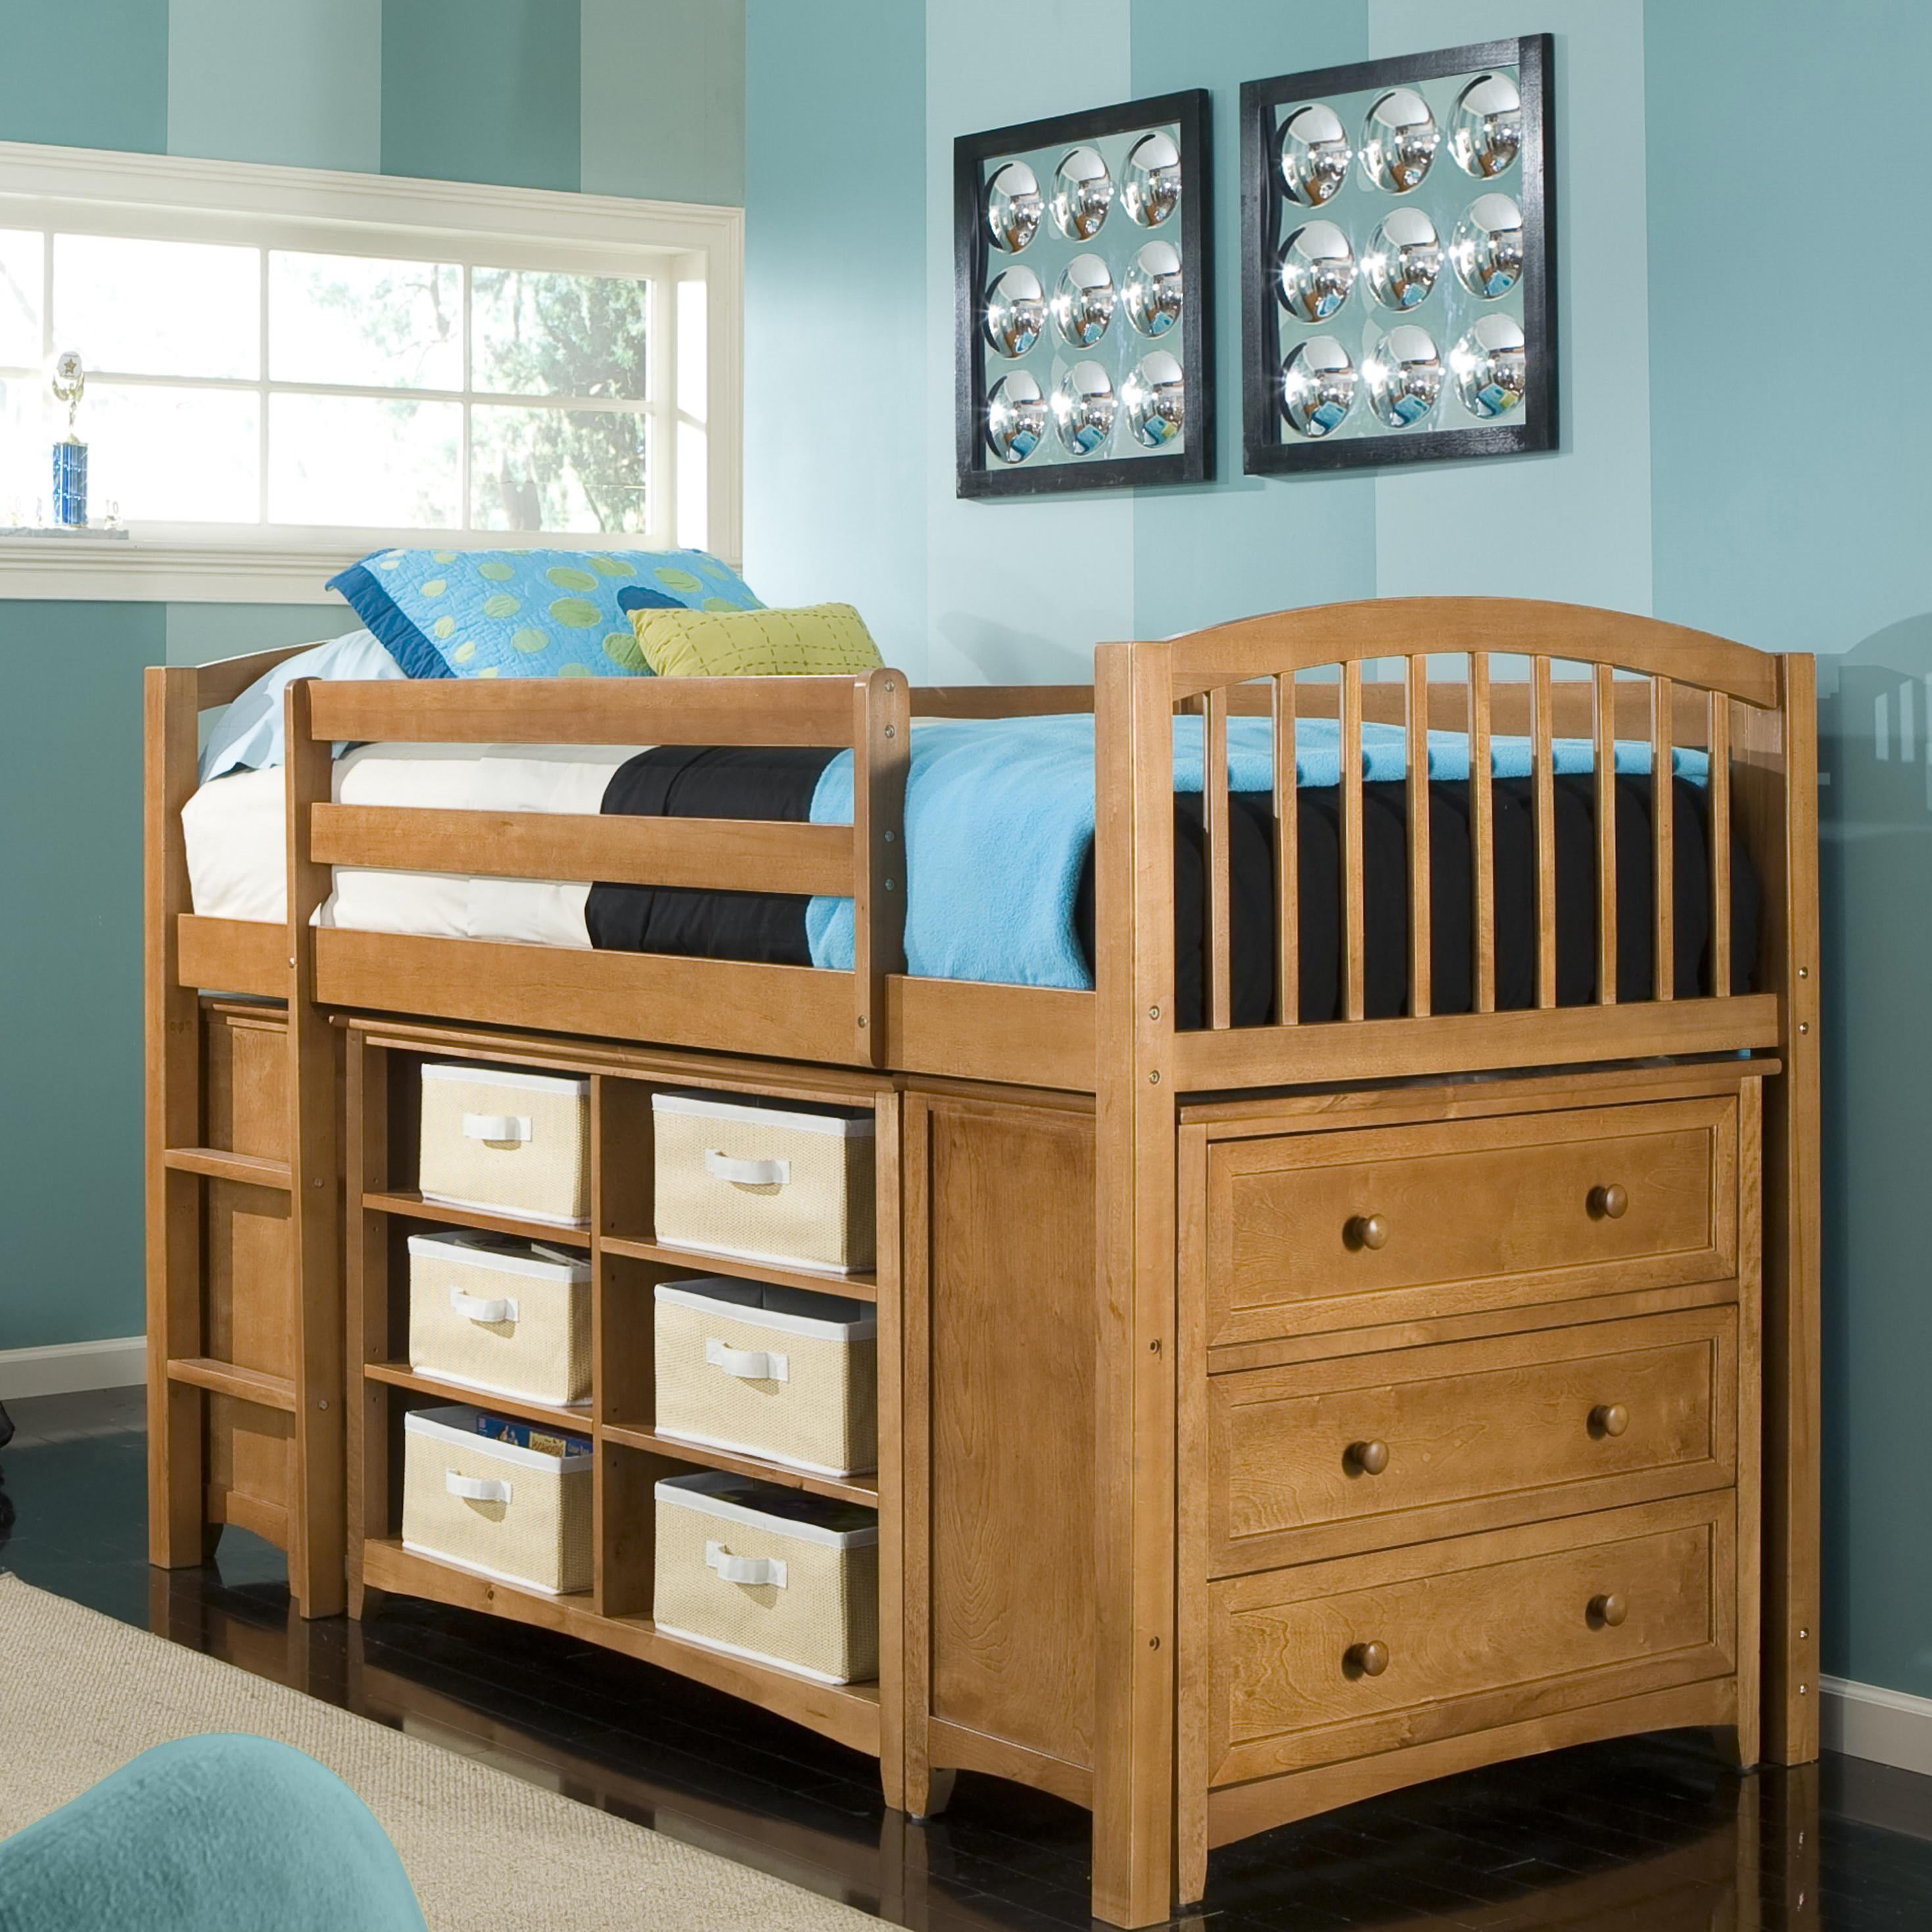 inexpensive bedroom furniture for kids photo - 3